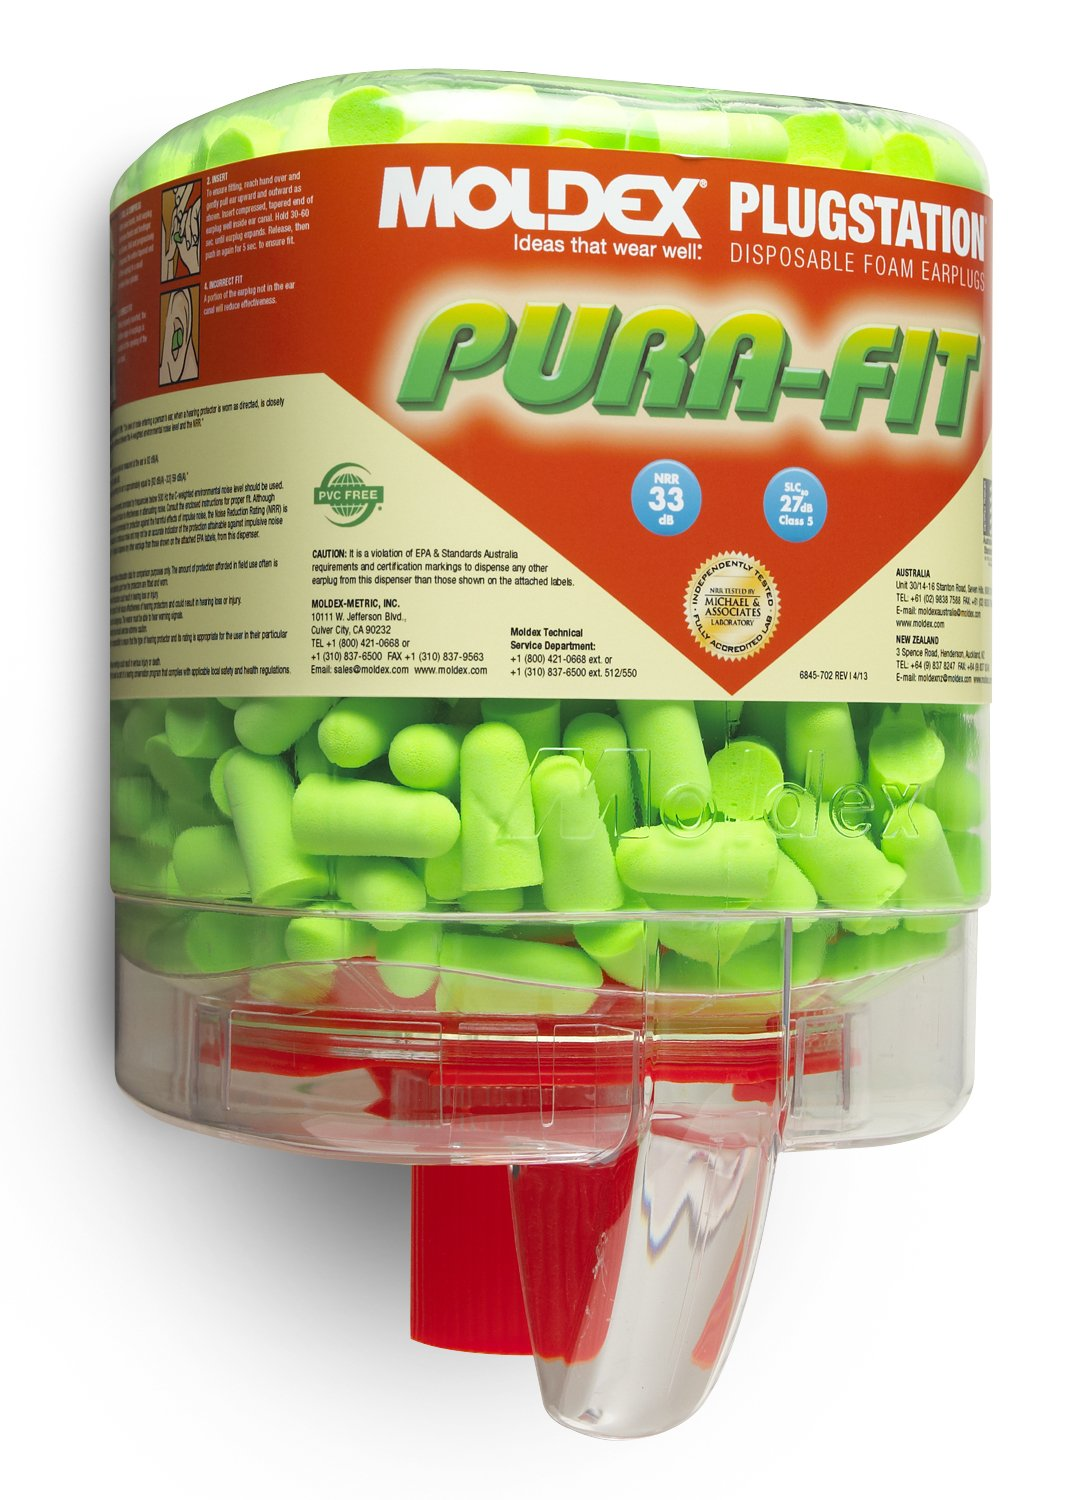 Moldex M6844 Pura-Fit Earplugs, Long Length (250 per Dispenser)